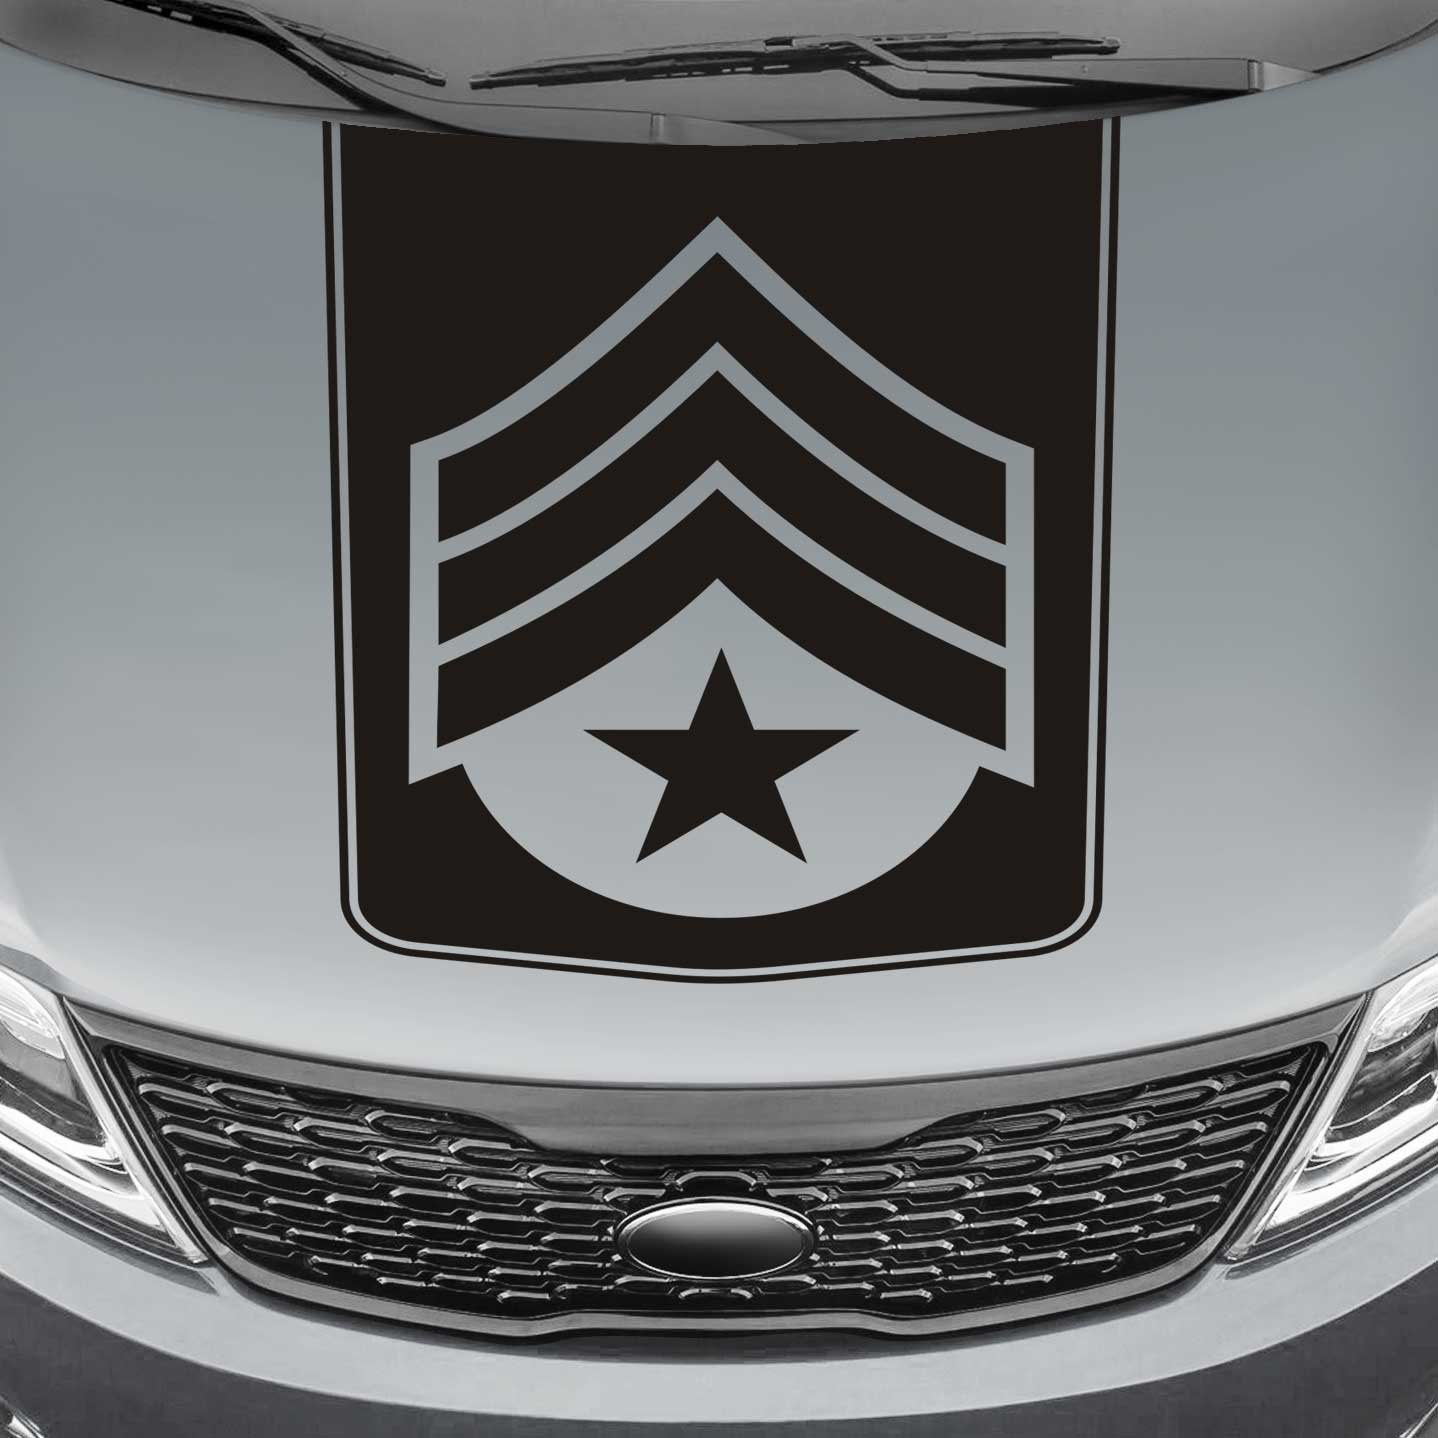 army star chevron blackout truck hood decal sticker